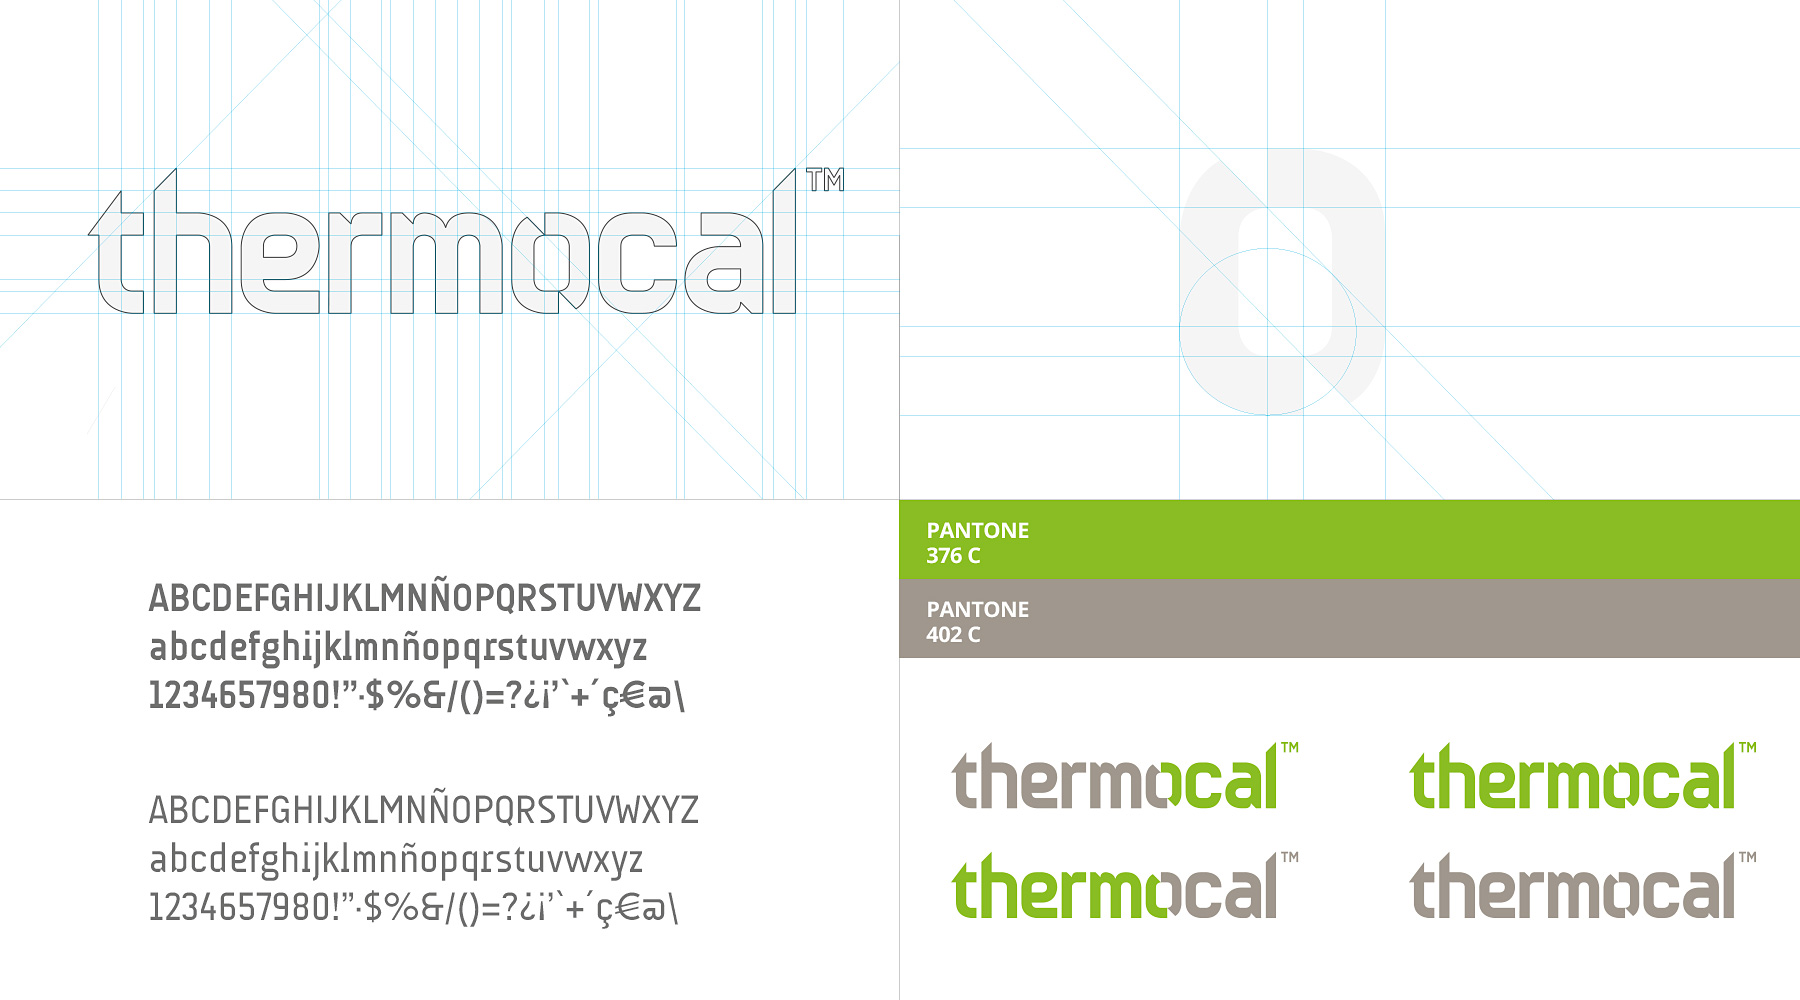 thermocal_2